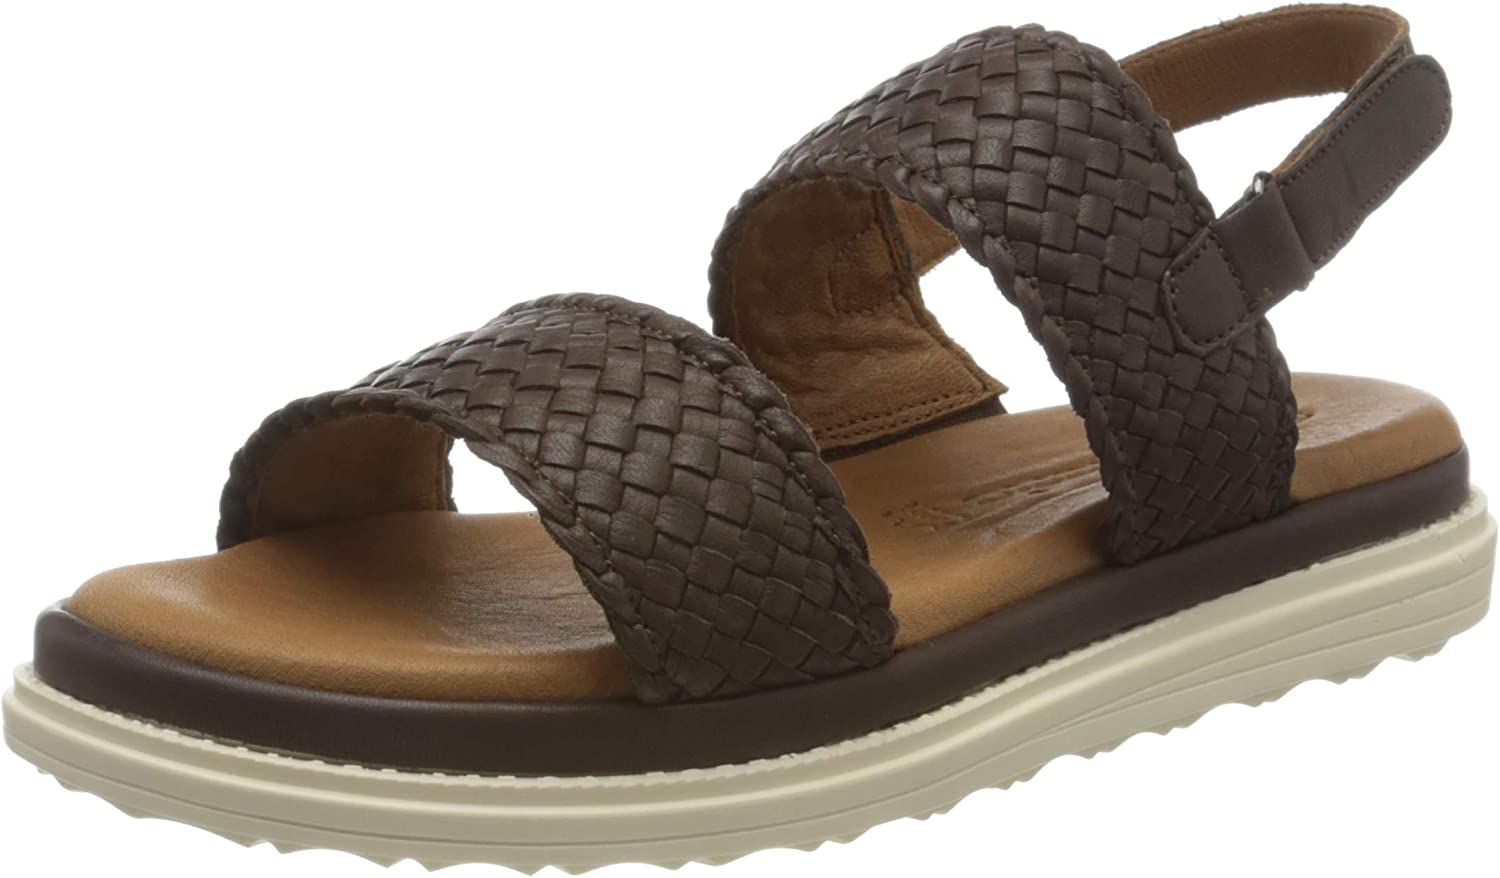 supreme Tamaris Women's Ankle Sandals Strap Shipping included